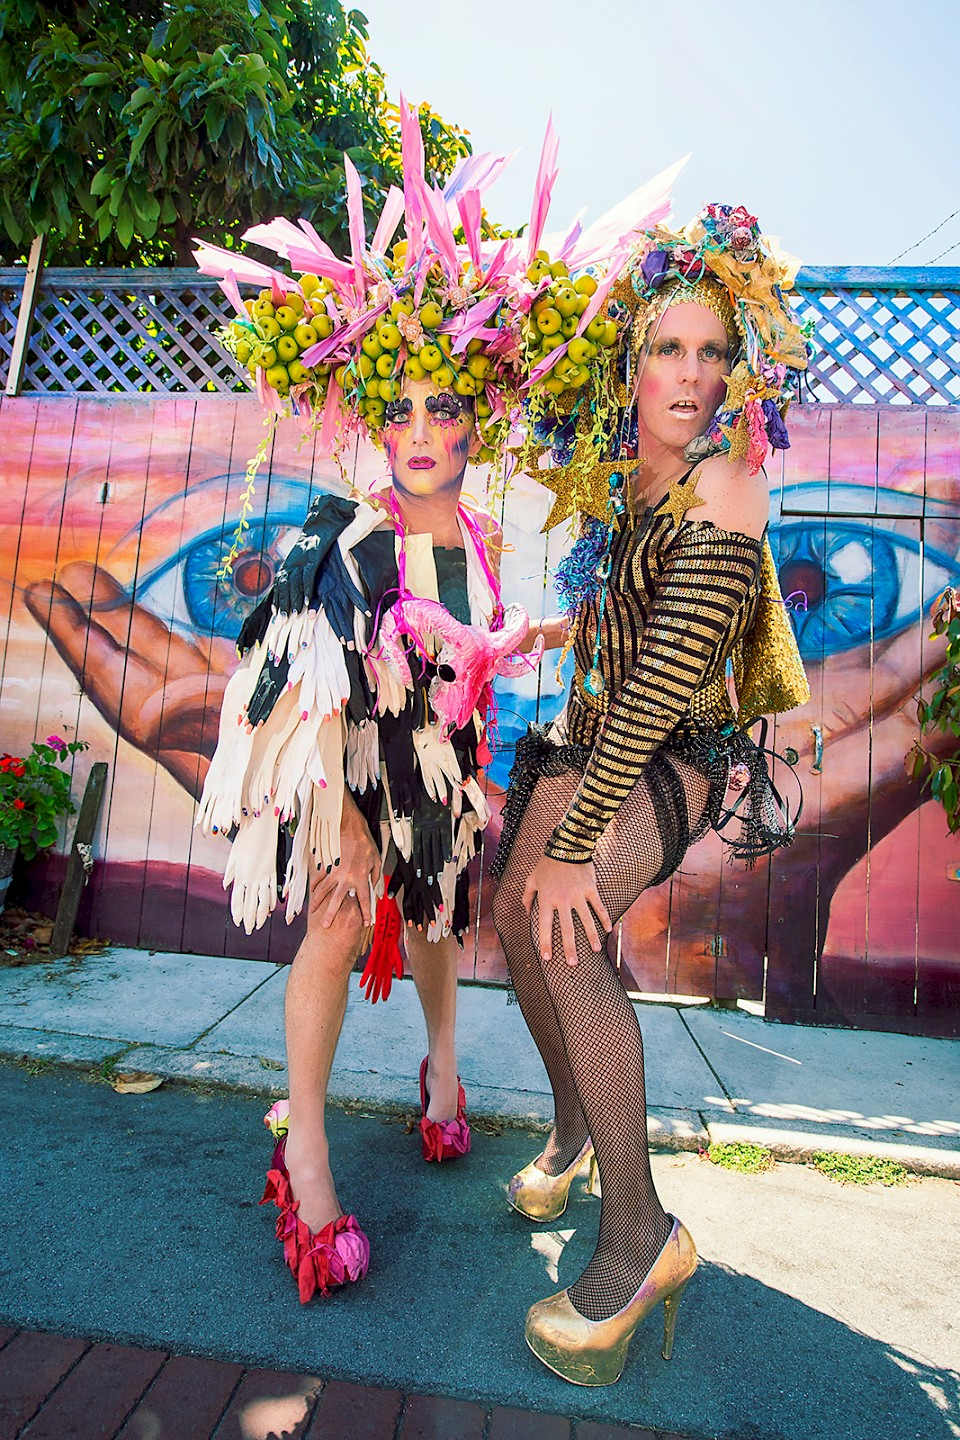 Taylor Mac and Machine Dazzle pose in Balmy Alley, SF. Photo by Little Fang Photography